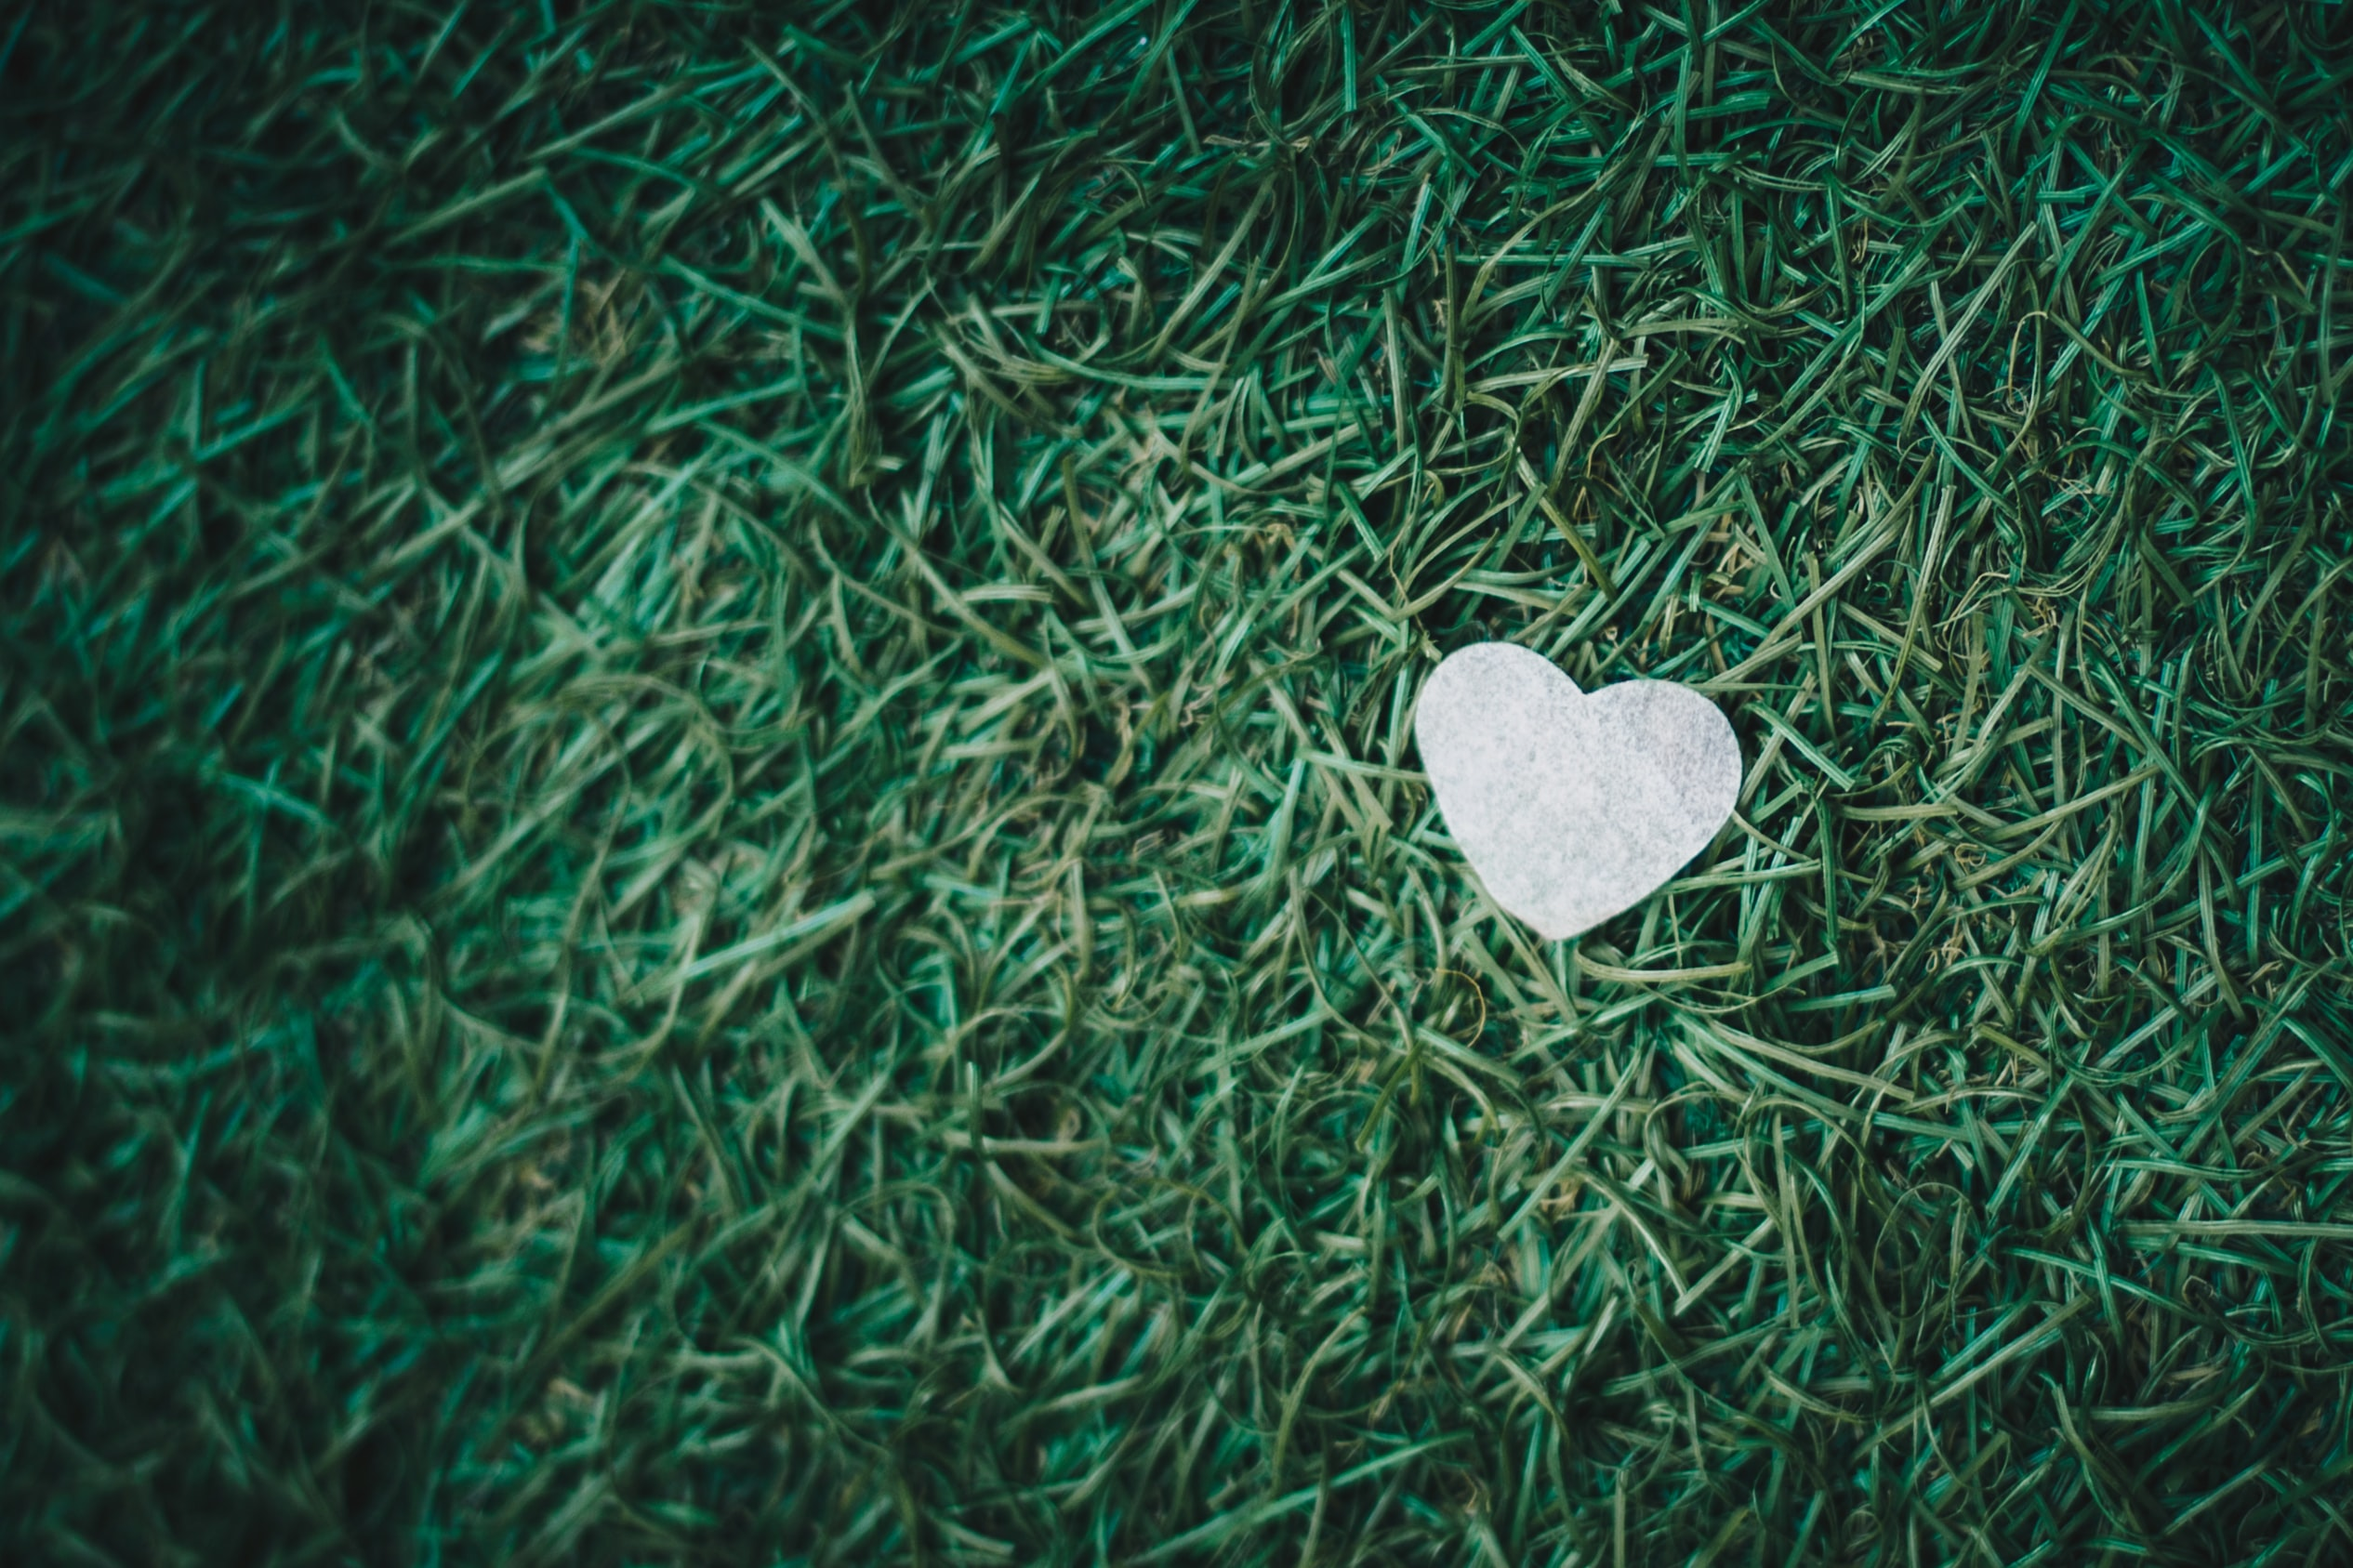 gray heart decor on green grass